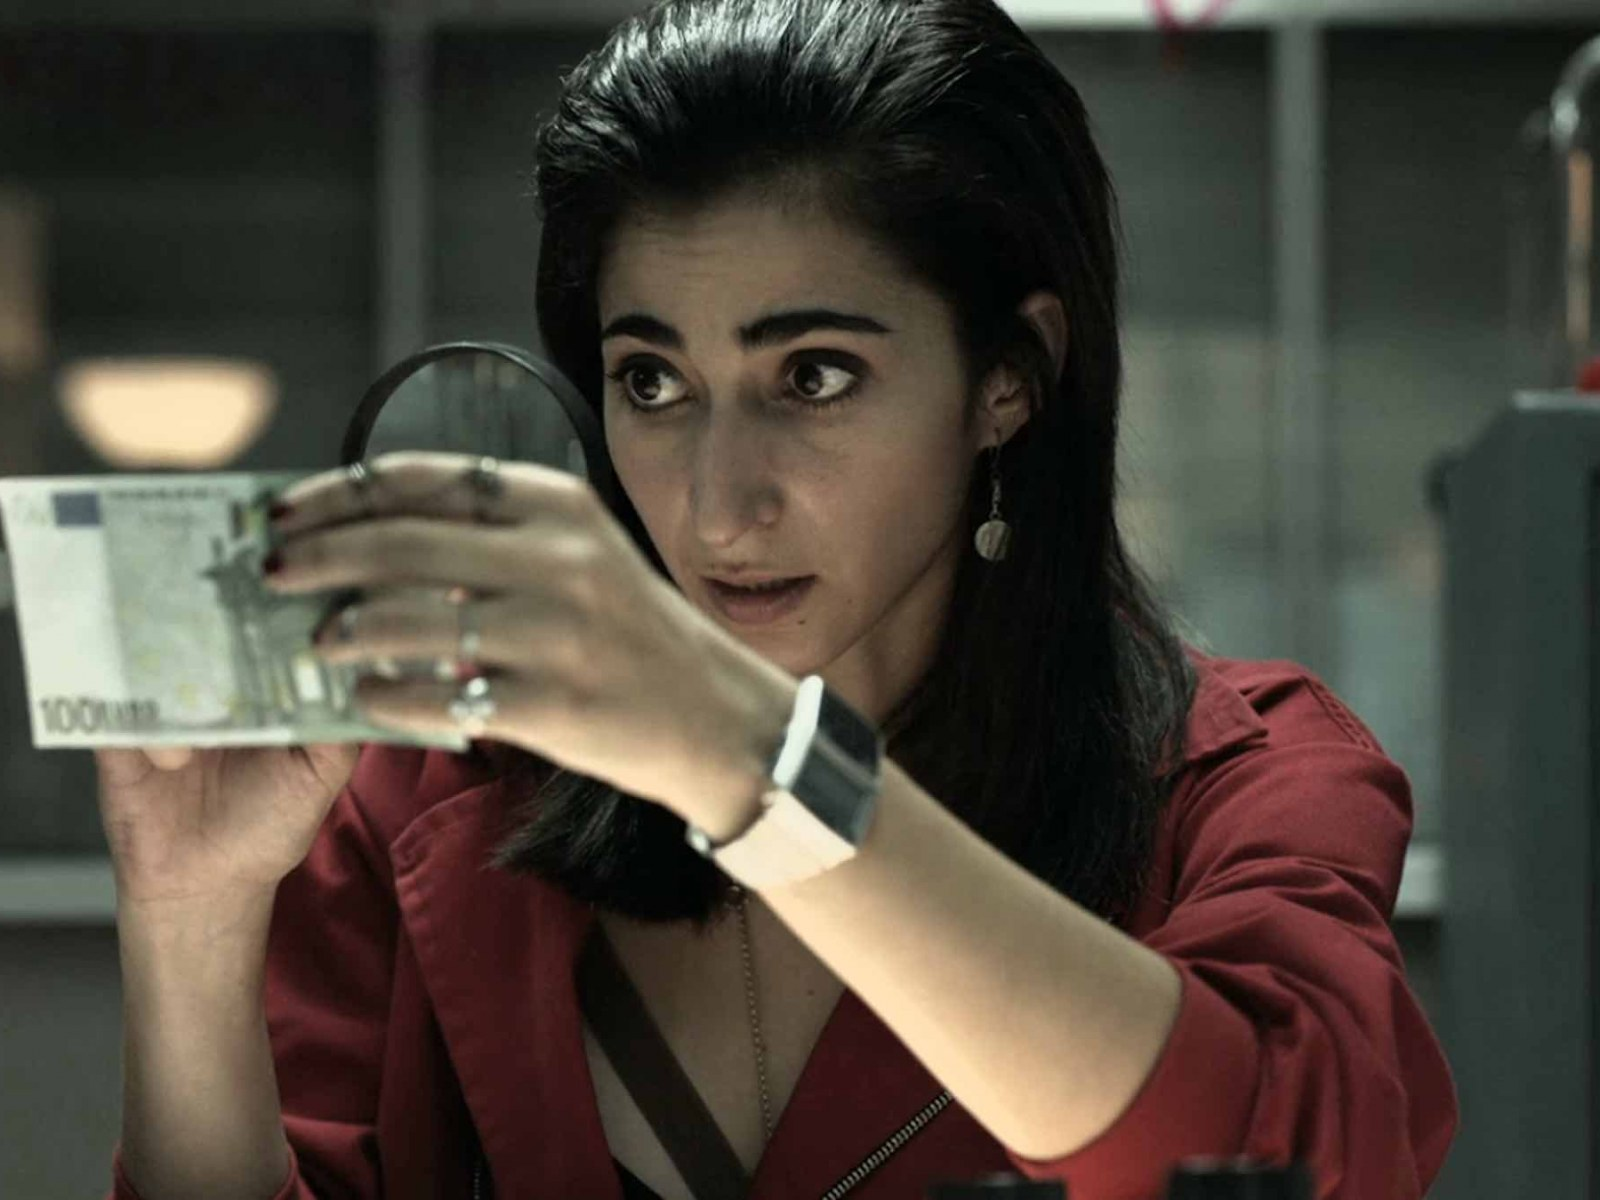 To celebrate the long awaited release of 'Money Heist' Season 4, we've pulled more of our favorite quotes from our favorite troublemakers.